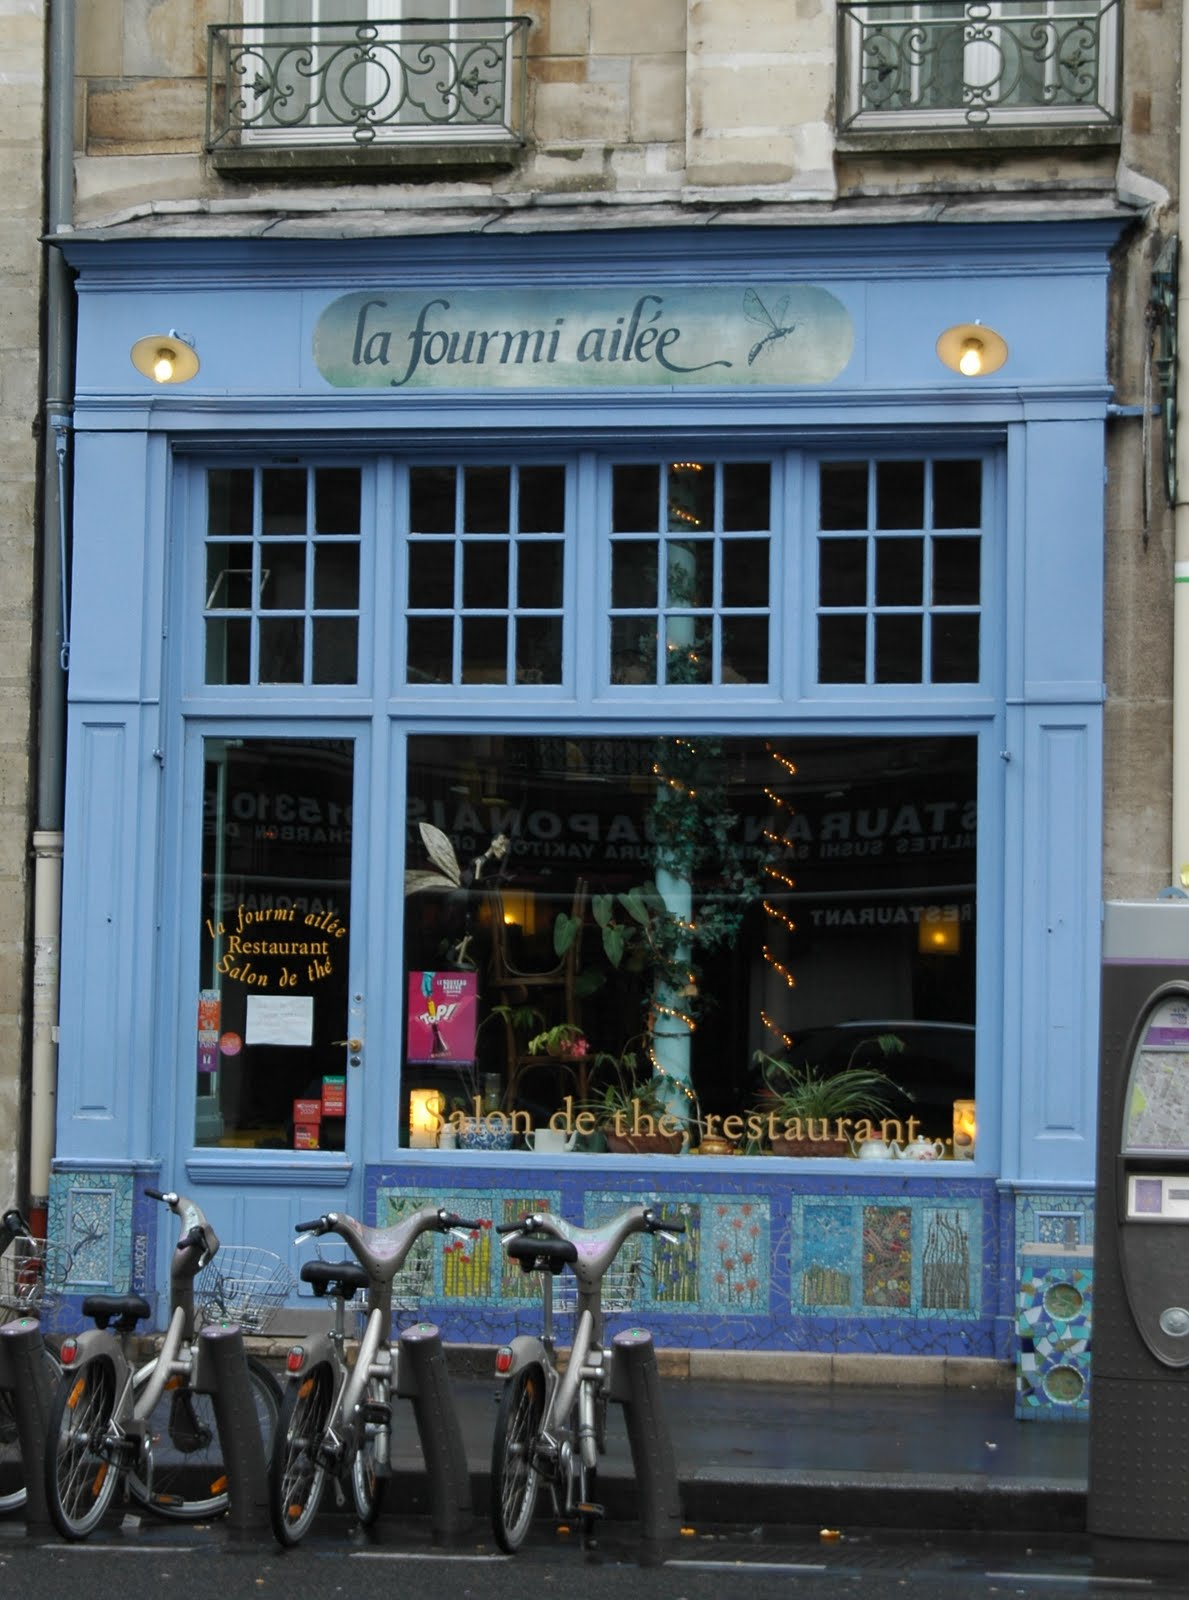 La Fourmi Ailée = The Winged Ant 8, rue Fouarre